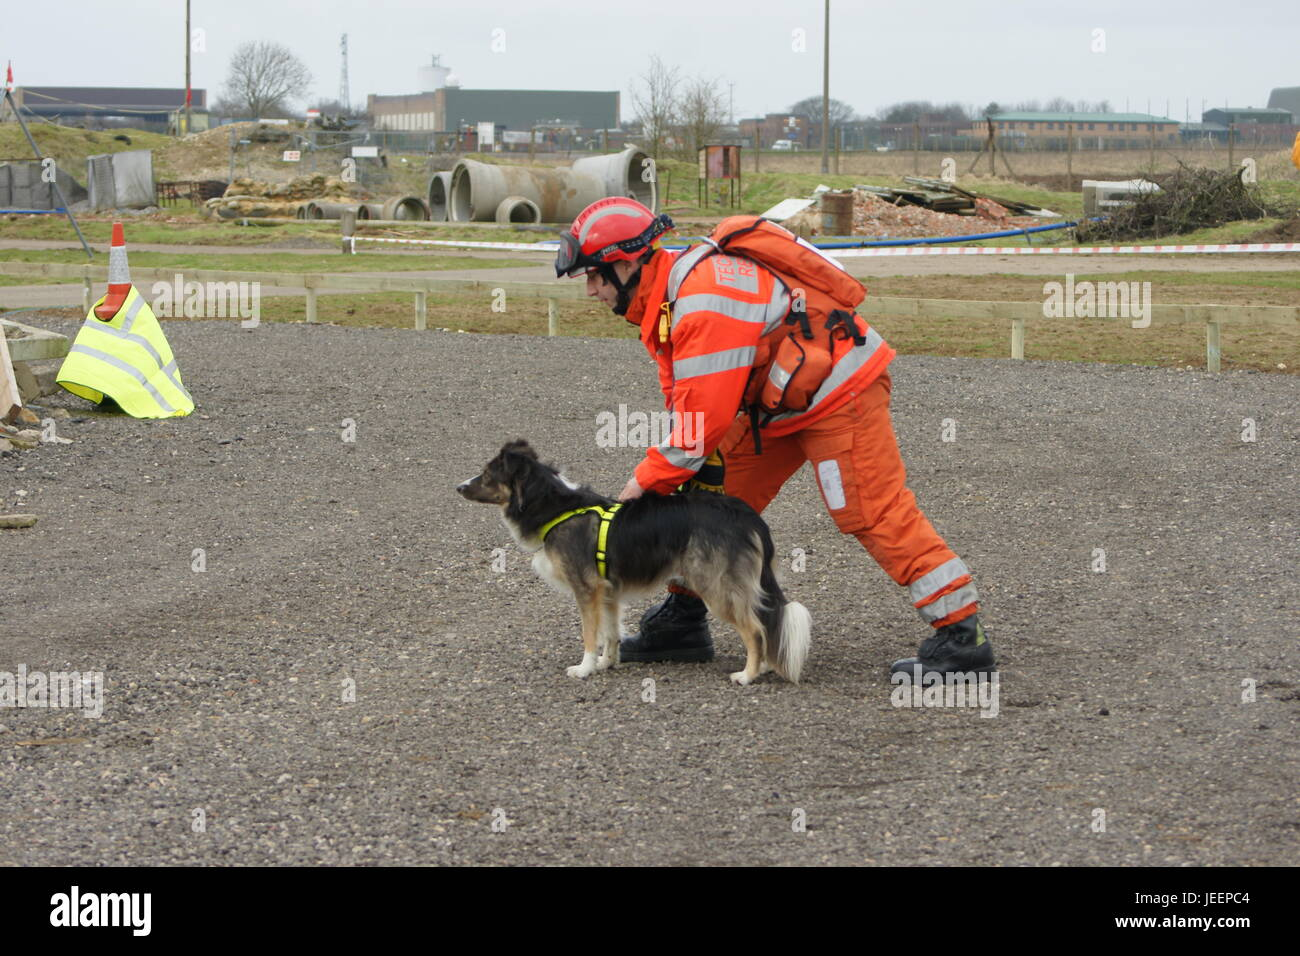 fire service Search and rescue dog, USAR team - Stock Image